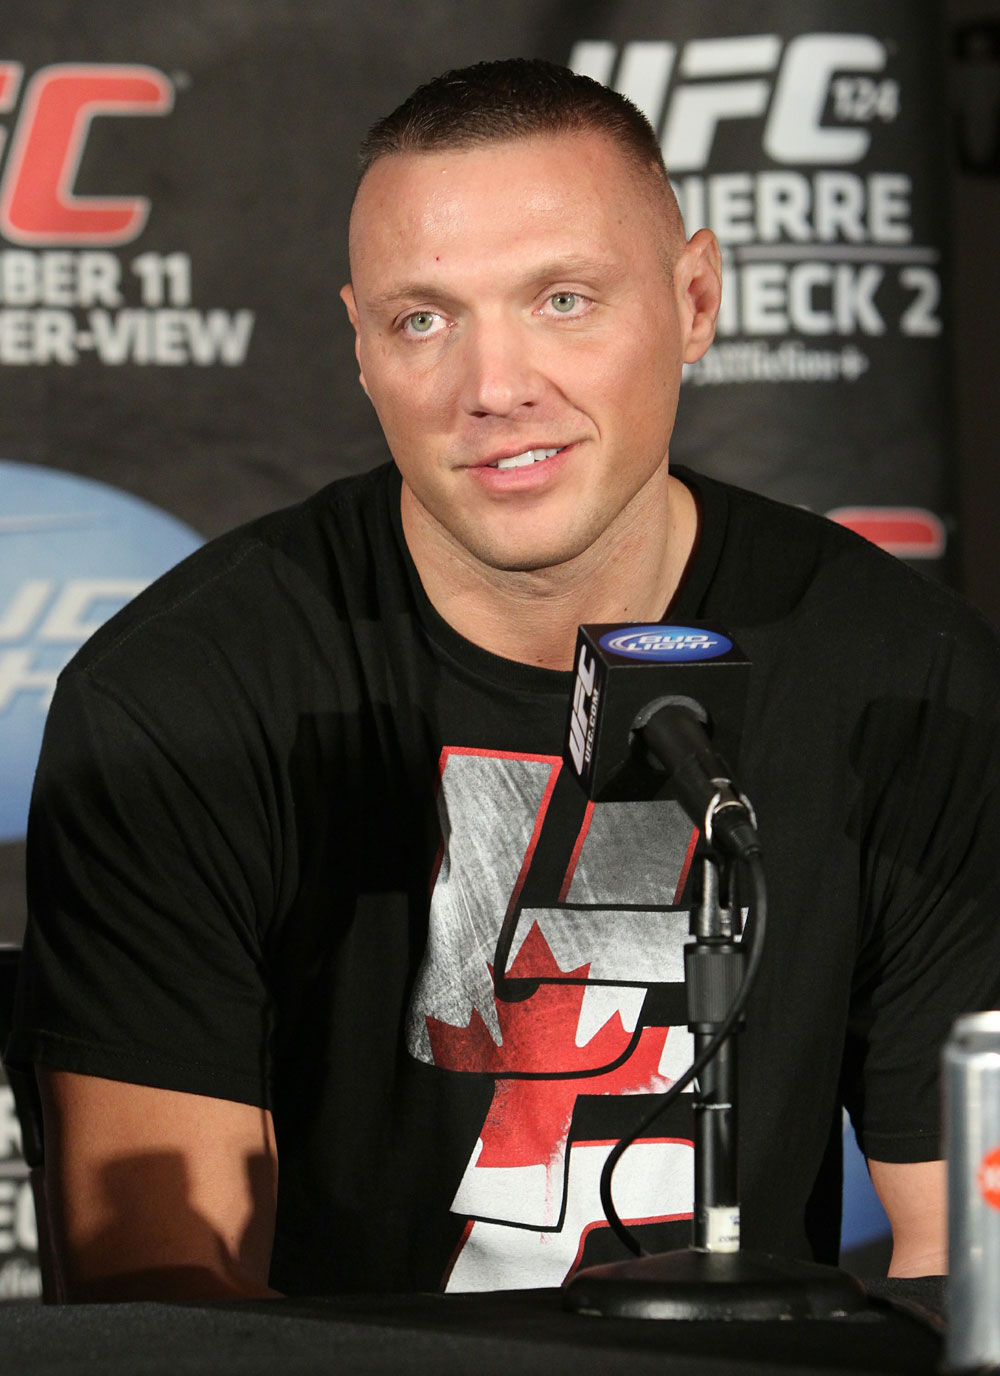 UFC 124 Press Conference: Sean McCorkle